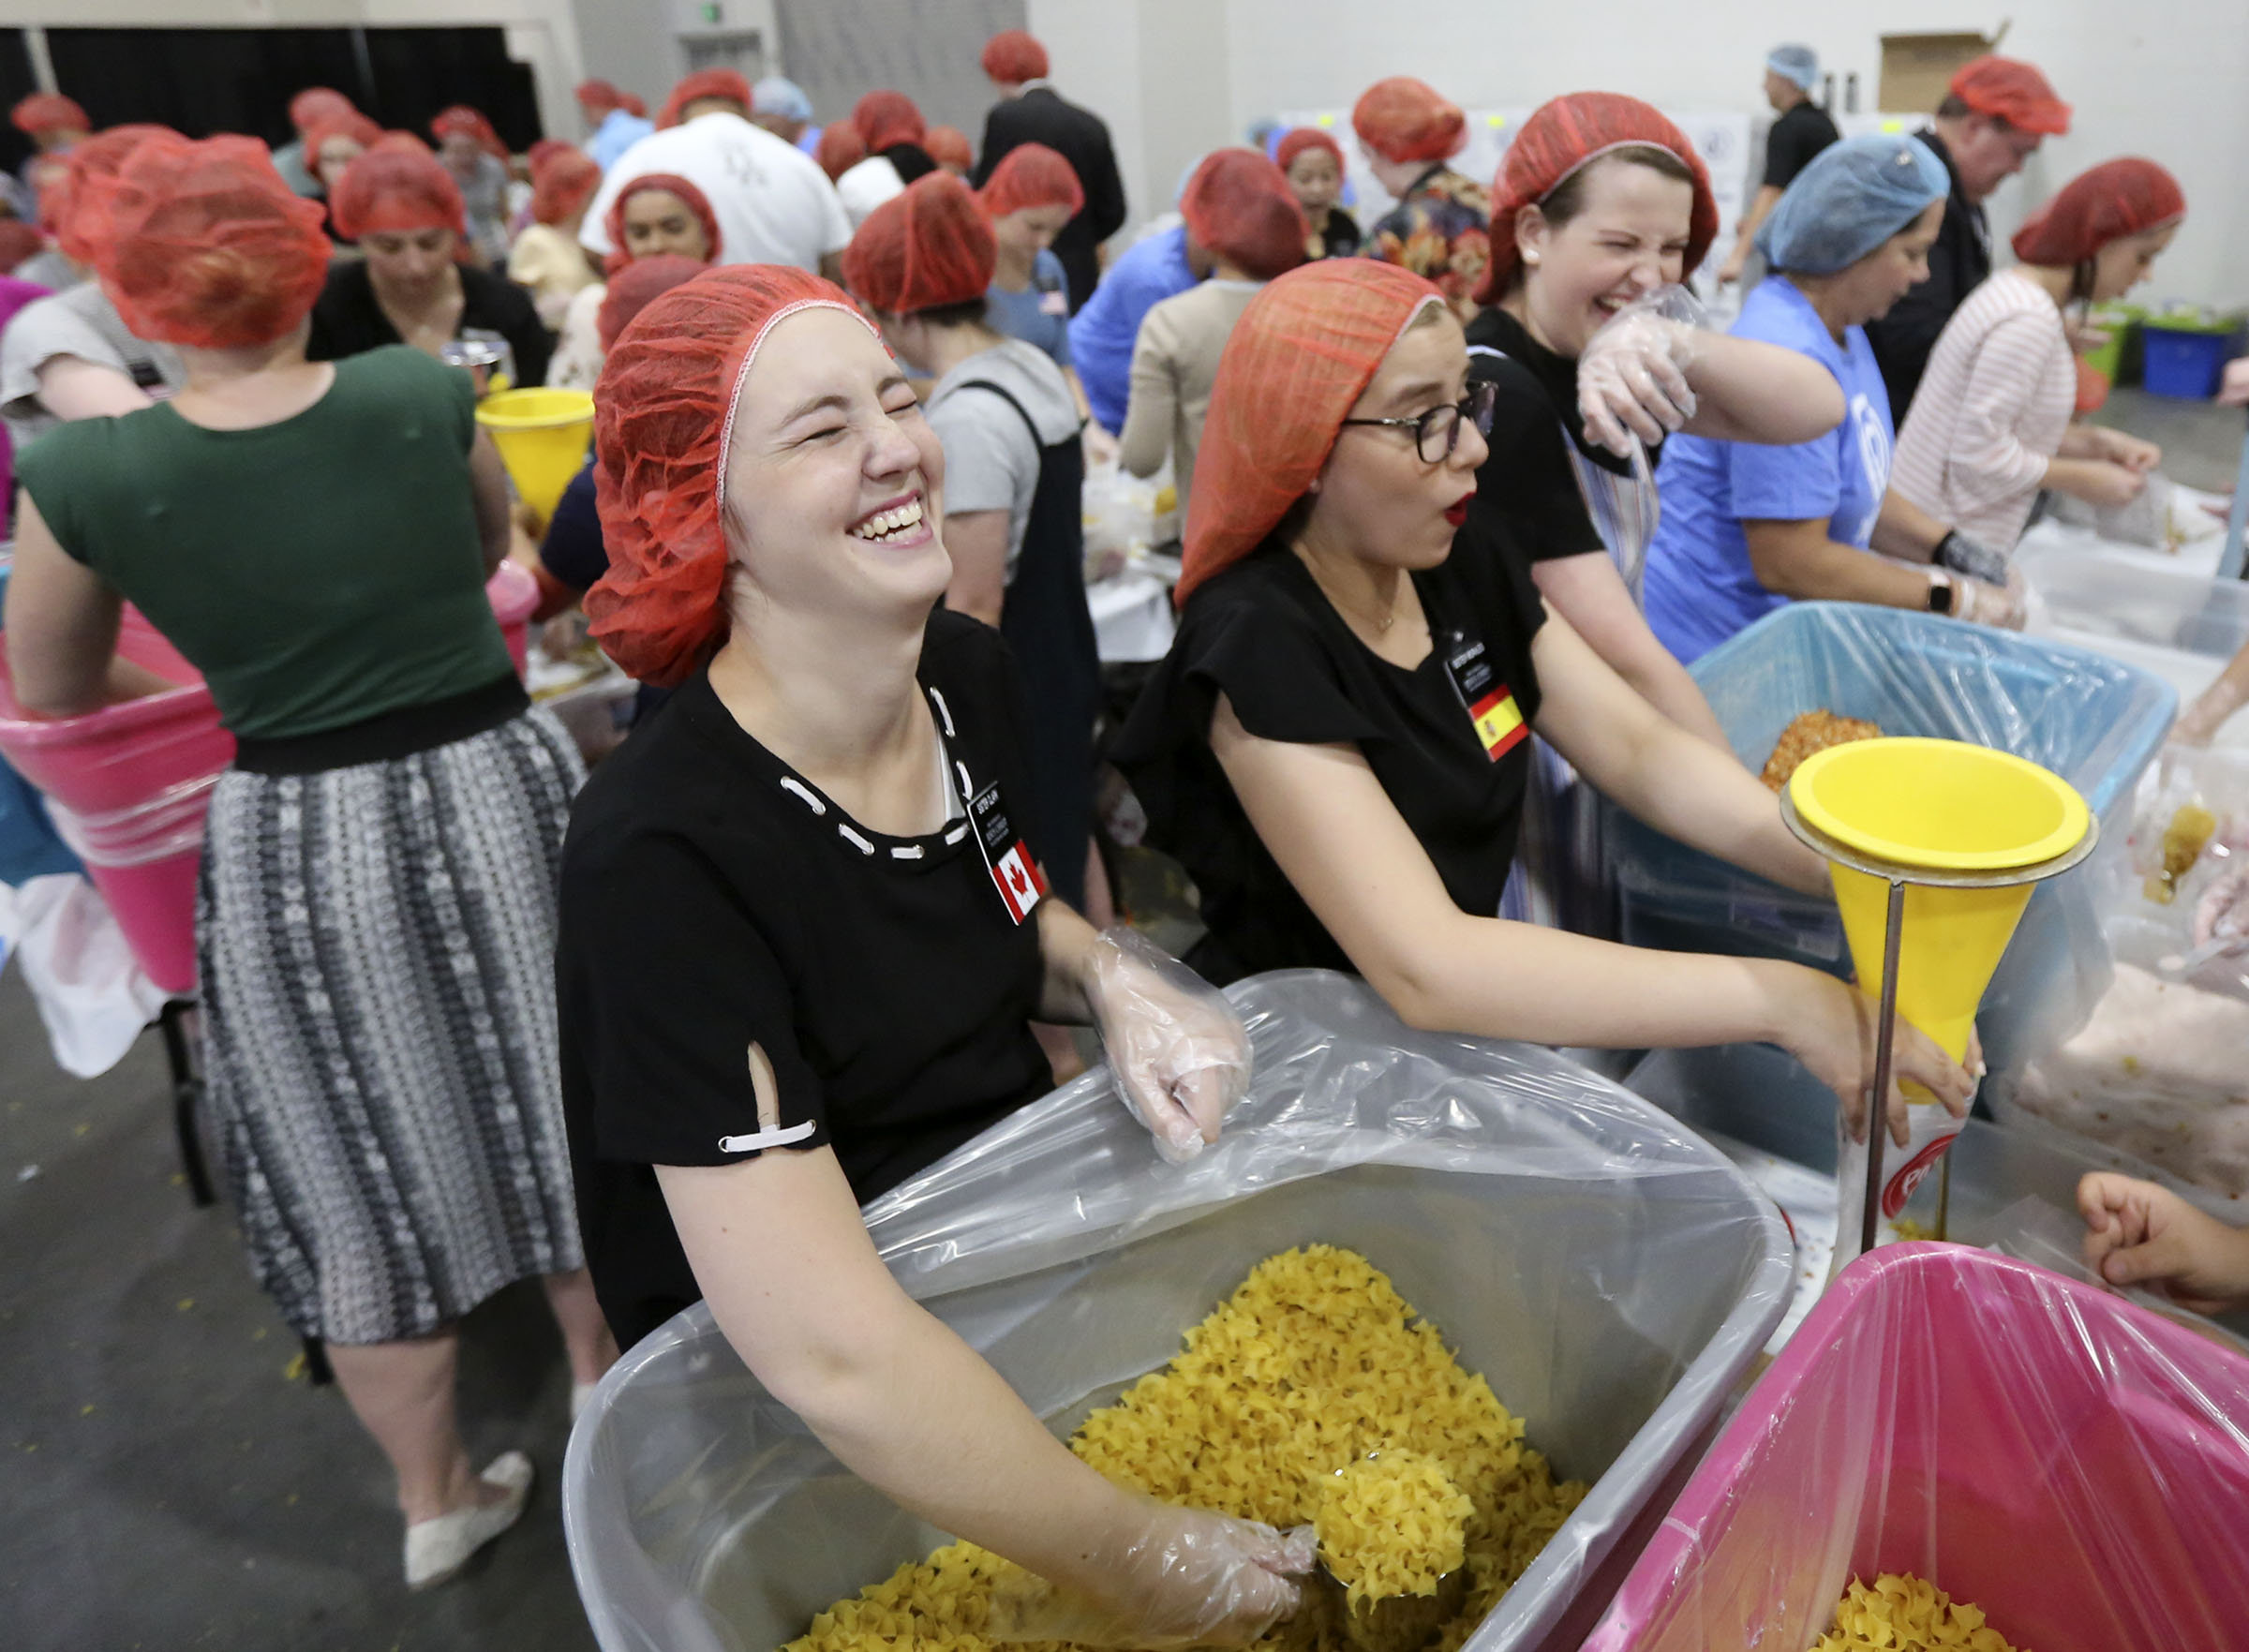 Sister Zoey Clark, Sister Priscilla Morales and Sister Callie Jorgensen — missionaries from Temple Square — package pasta dinners for a service project during the 68th United Nations Civil Society Conference at the Salt Palace Convention Center in Salt Lake City on Monday, Aug. 26, 2019.